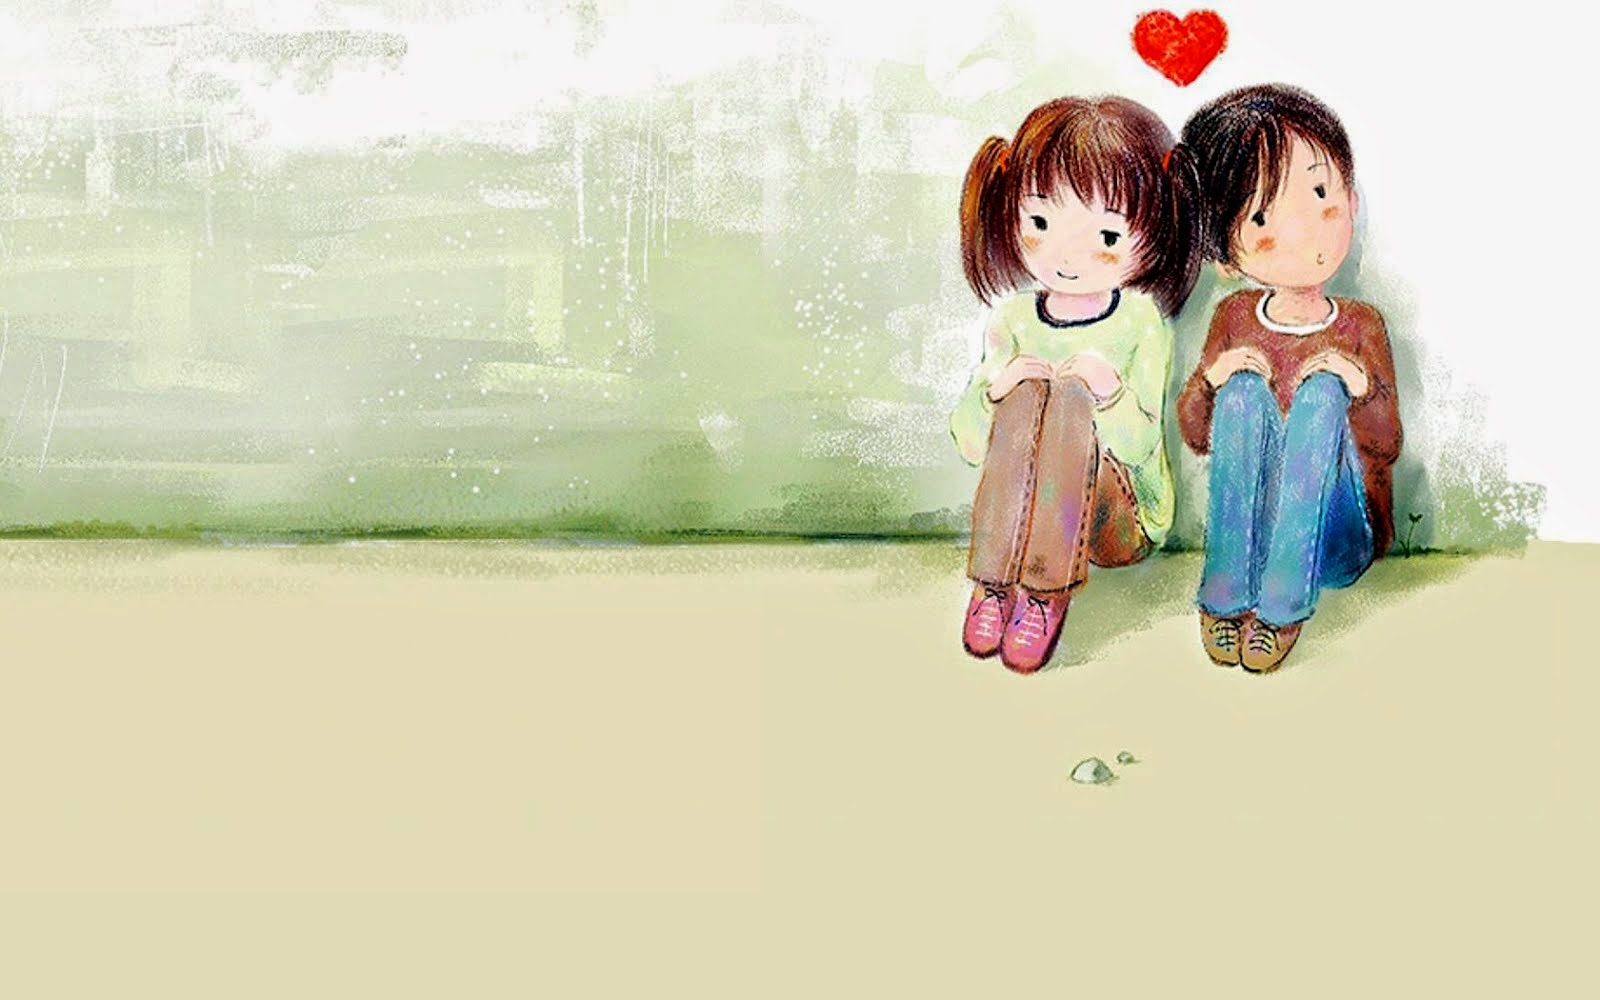 cute Love couple Hd Wallpaper Animated : cute Little cartoon couple In Love HD Wallpaper Best Love HD Wallpapers